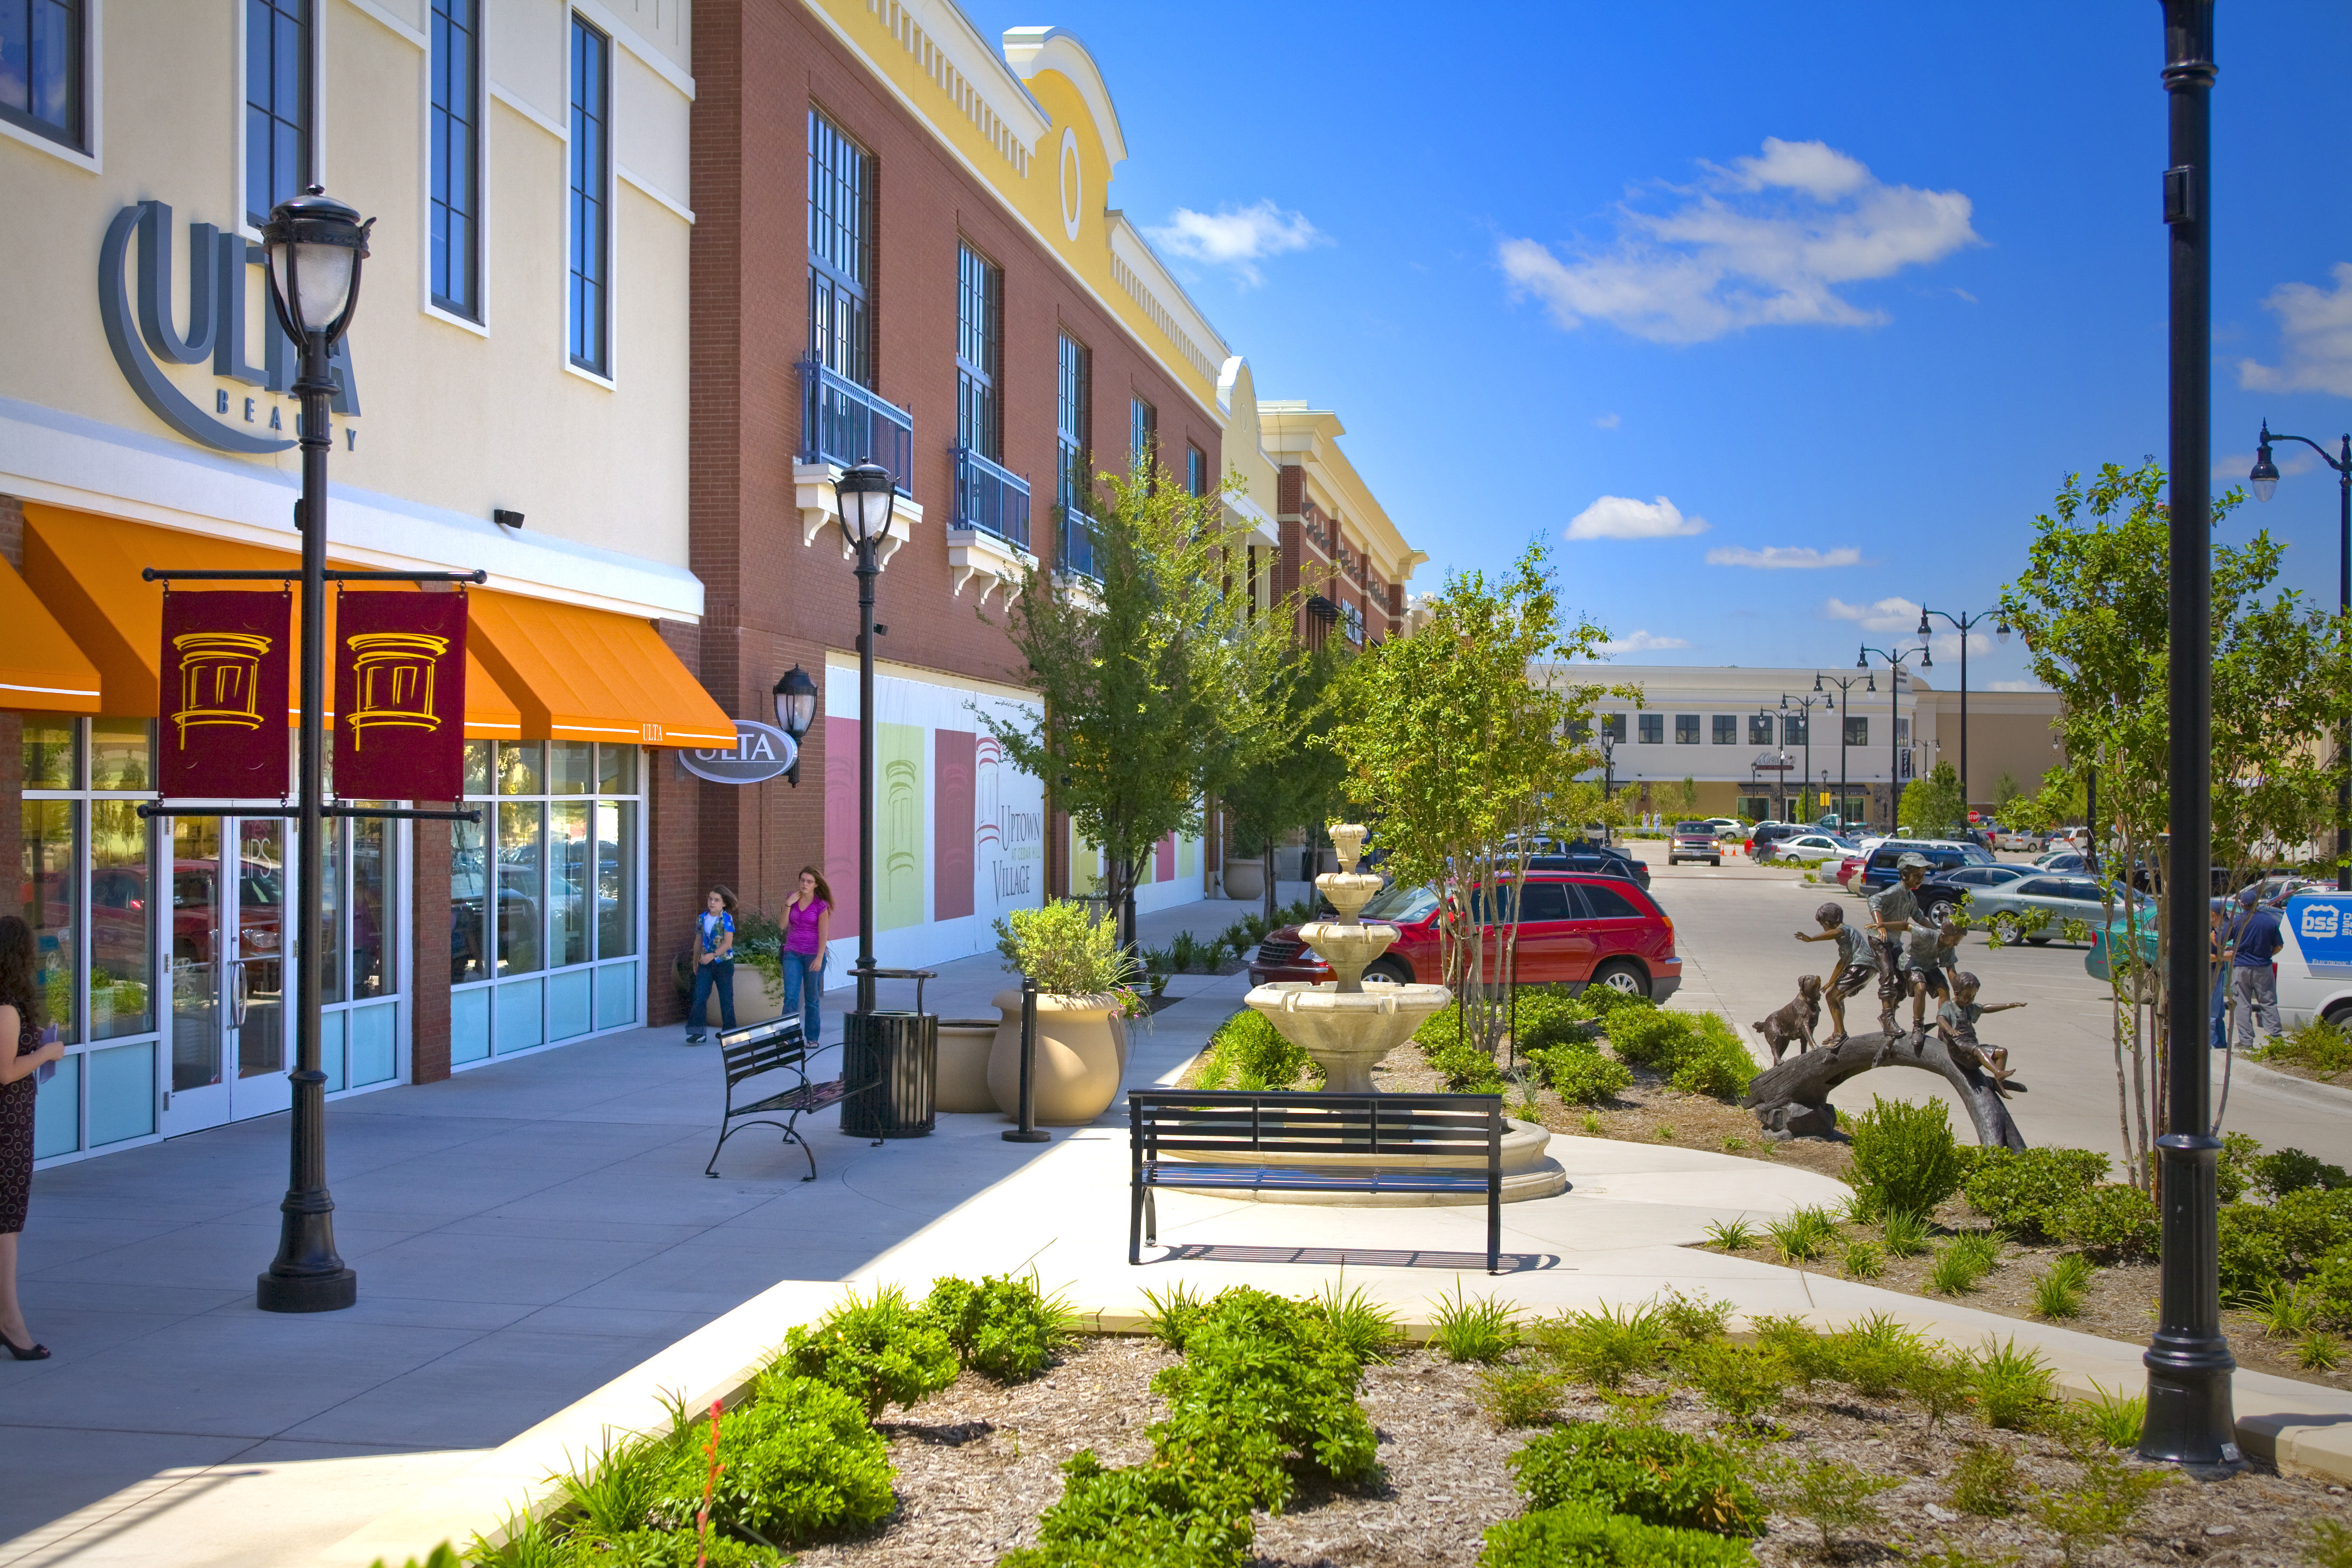 dallas county map with Shopping And Dining on East Texas Baptist University Master Plan together with Agrilife Research Groundwater Challenges Emerging Around Dallas Fort Worth Metroplex furthermore 5652455096 together with 309 Selma Lamar Henry House Dallas County 78705 additionally File Texas map   Wise County.